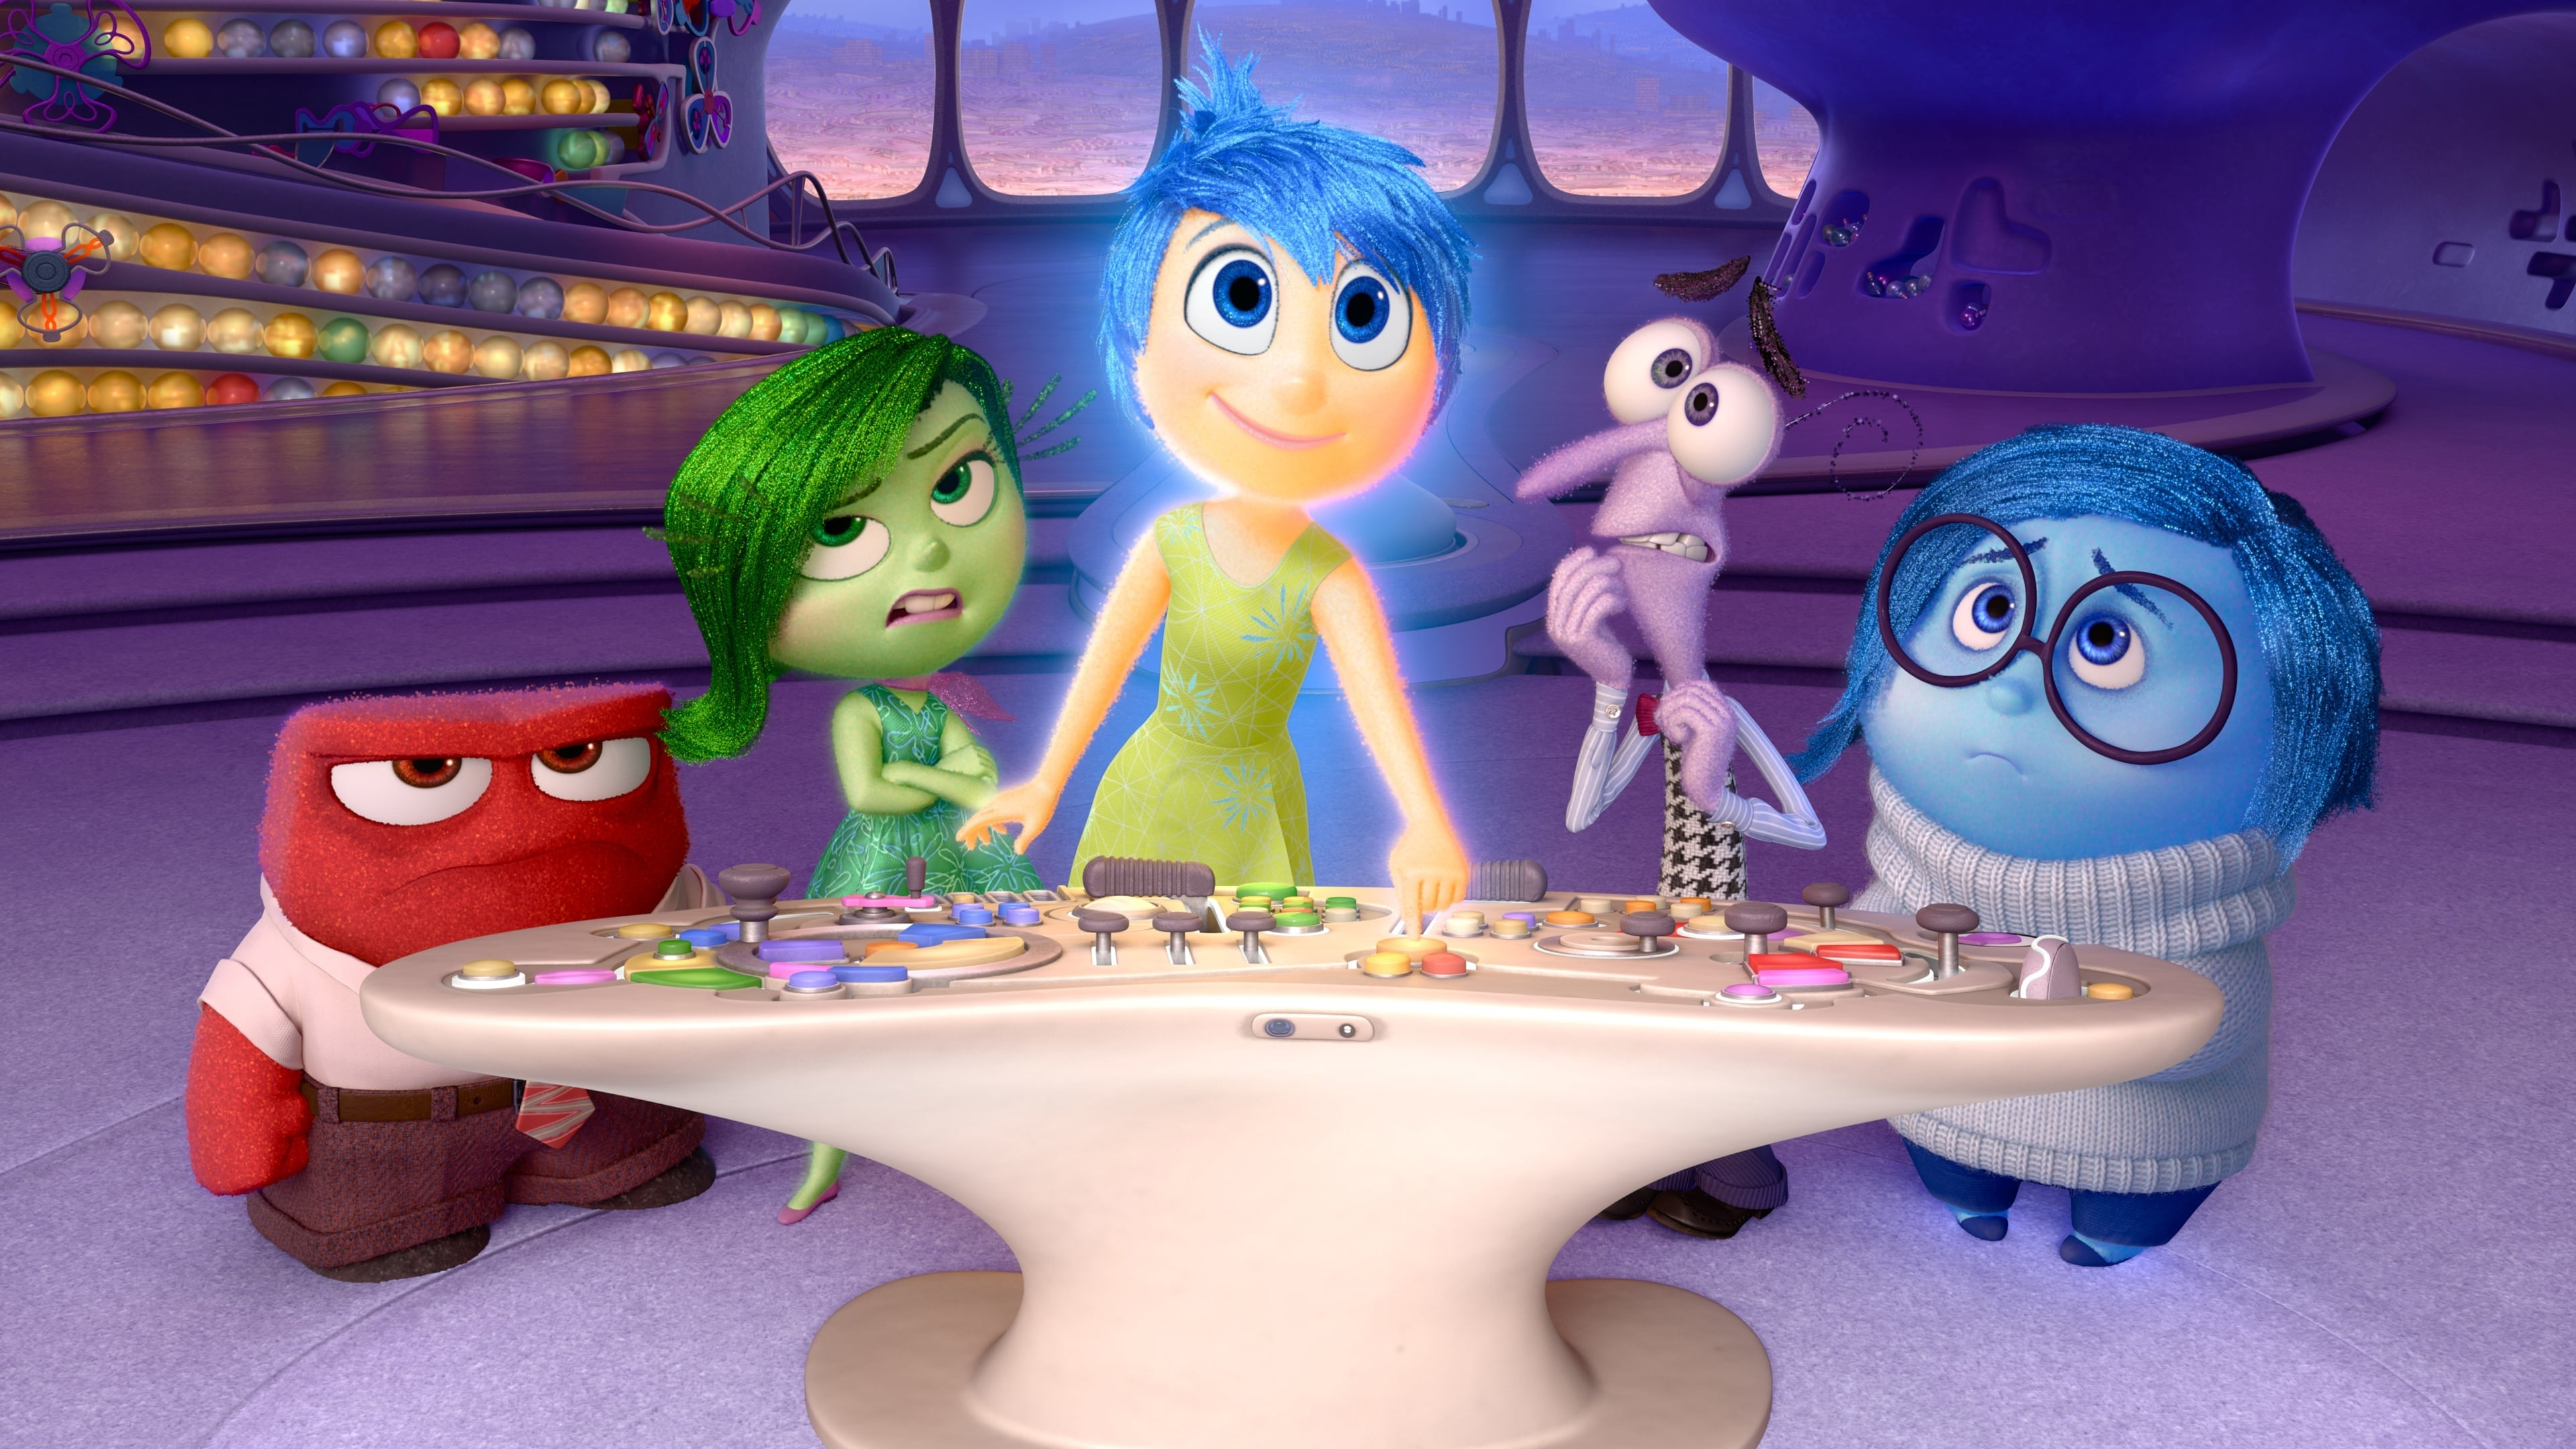 Disney Pixar Inside Out by Pete Doctor on Cinematic Doctrine Christian Movie Blog